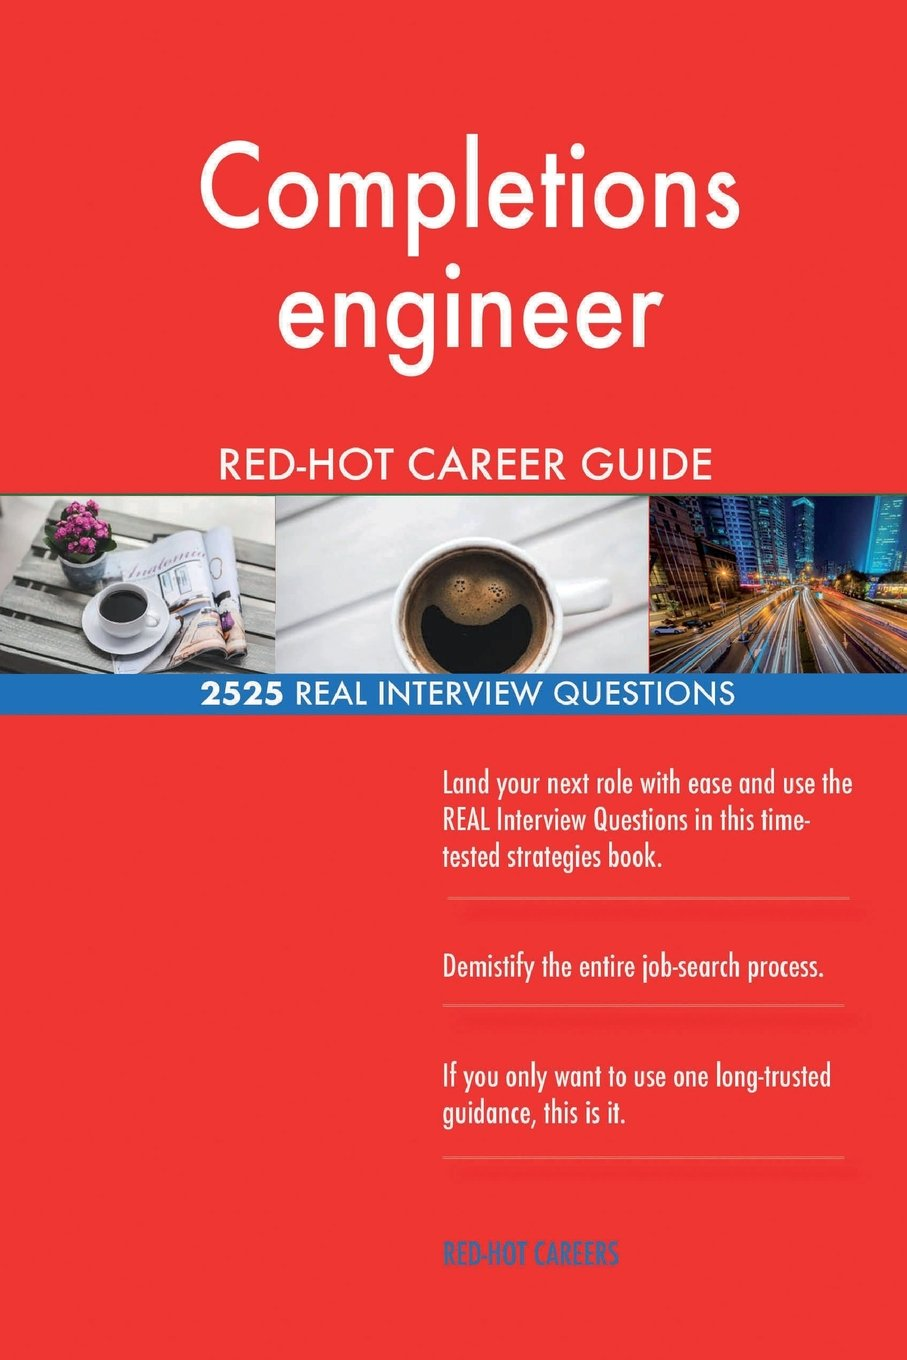 Download Completions engineer RED-HOT Career Guide; 2525 REAL Interview Questions pdf